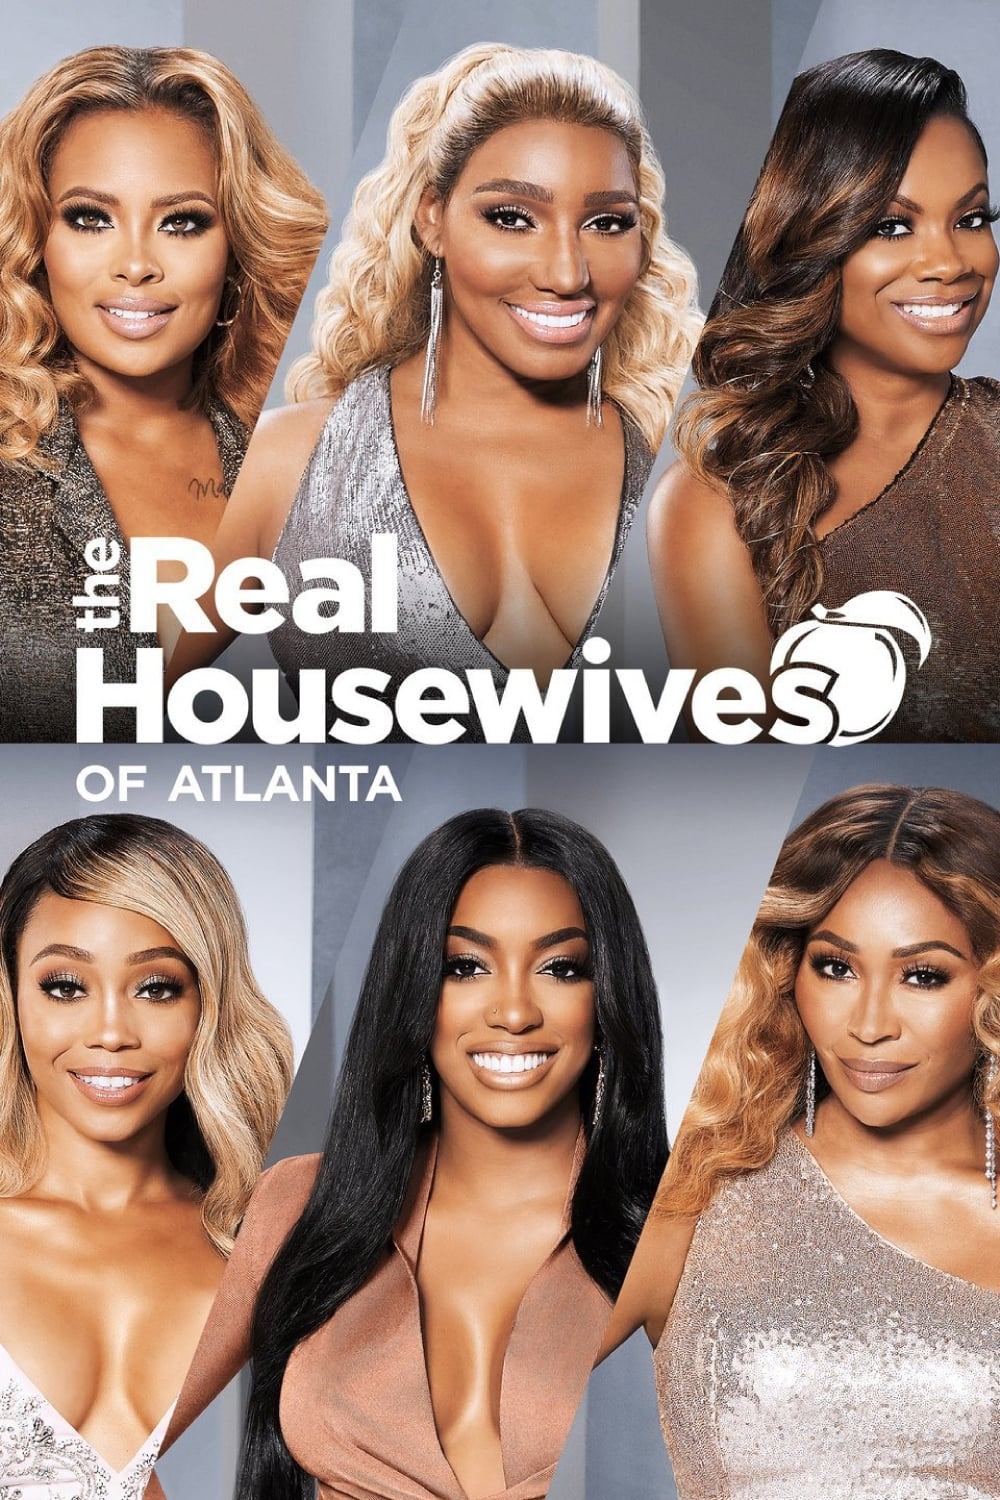 image for The Real Housewives of Atlanta